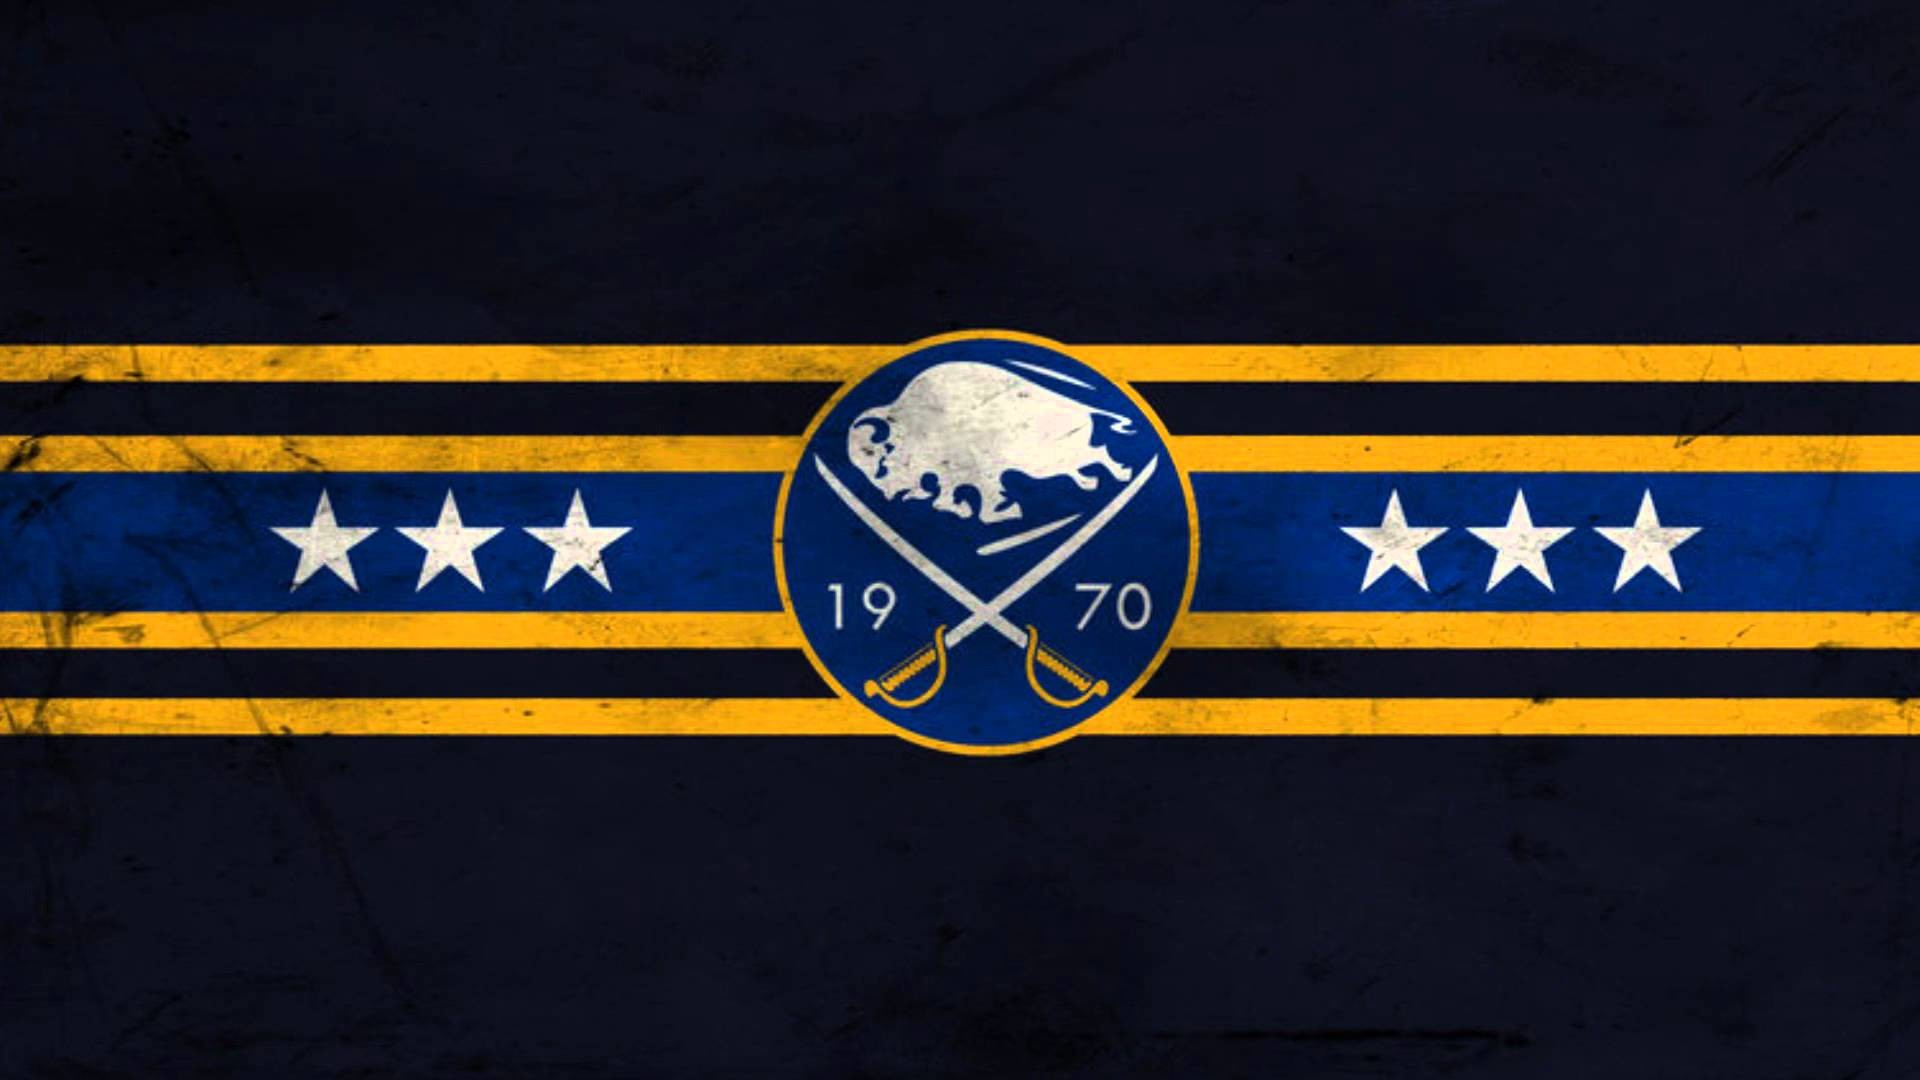 1920x1080 - Buffalo Sabres Wallpapers 1